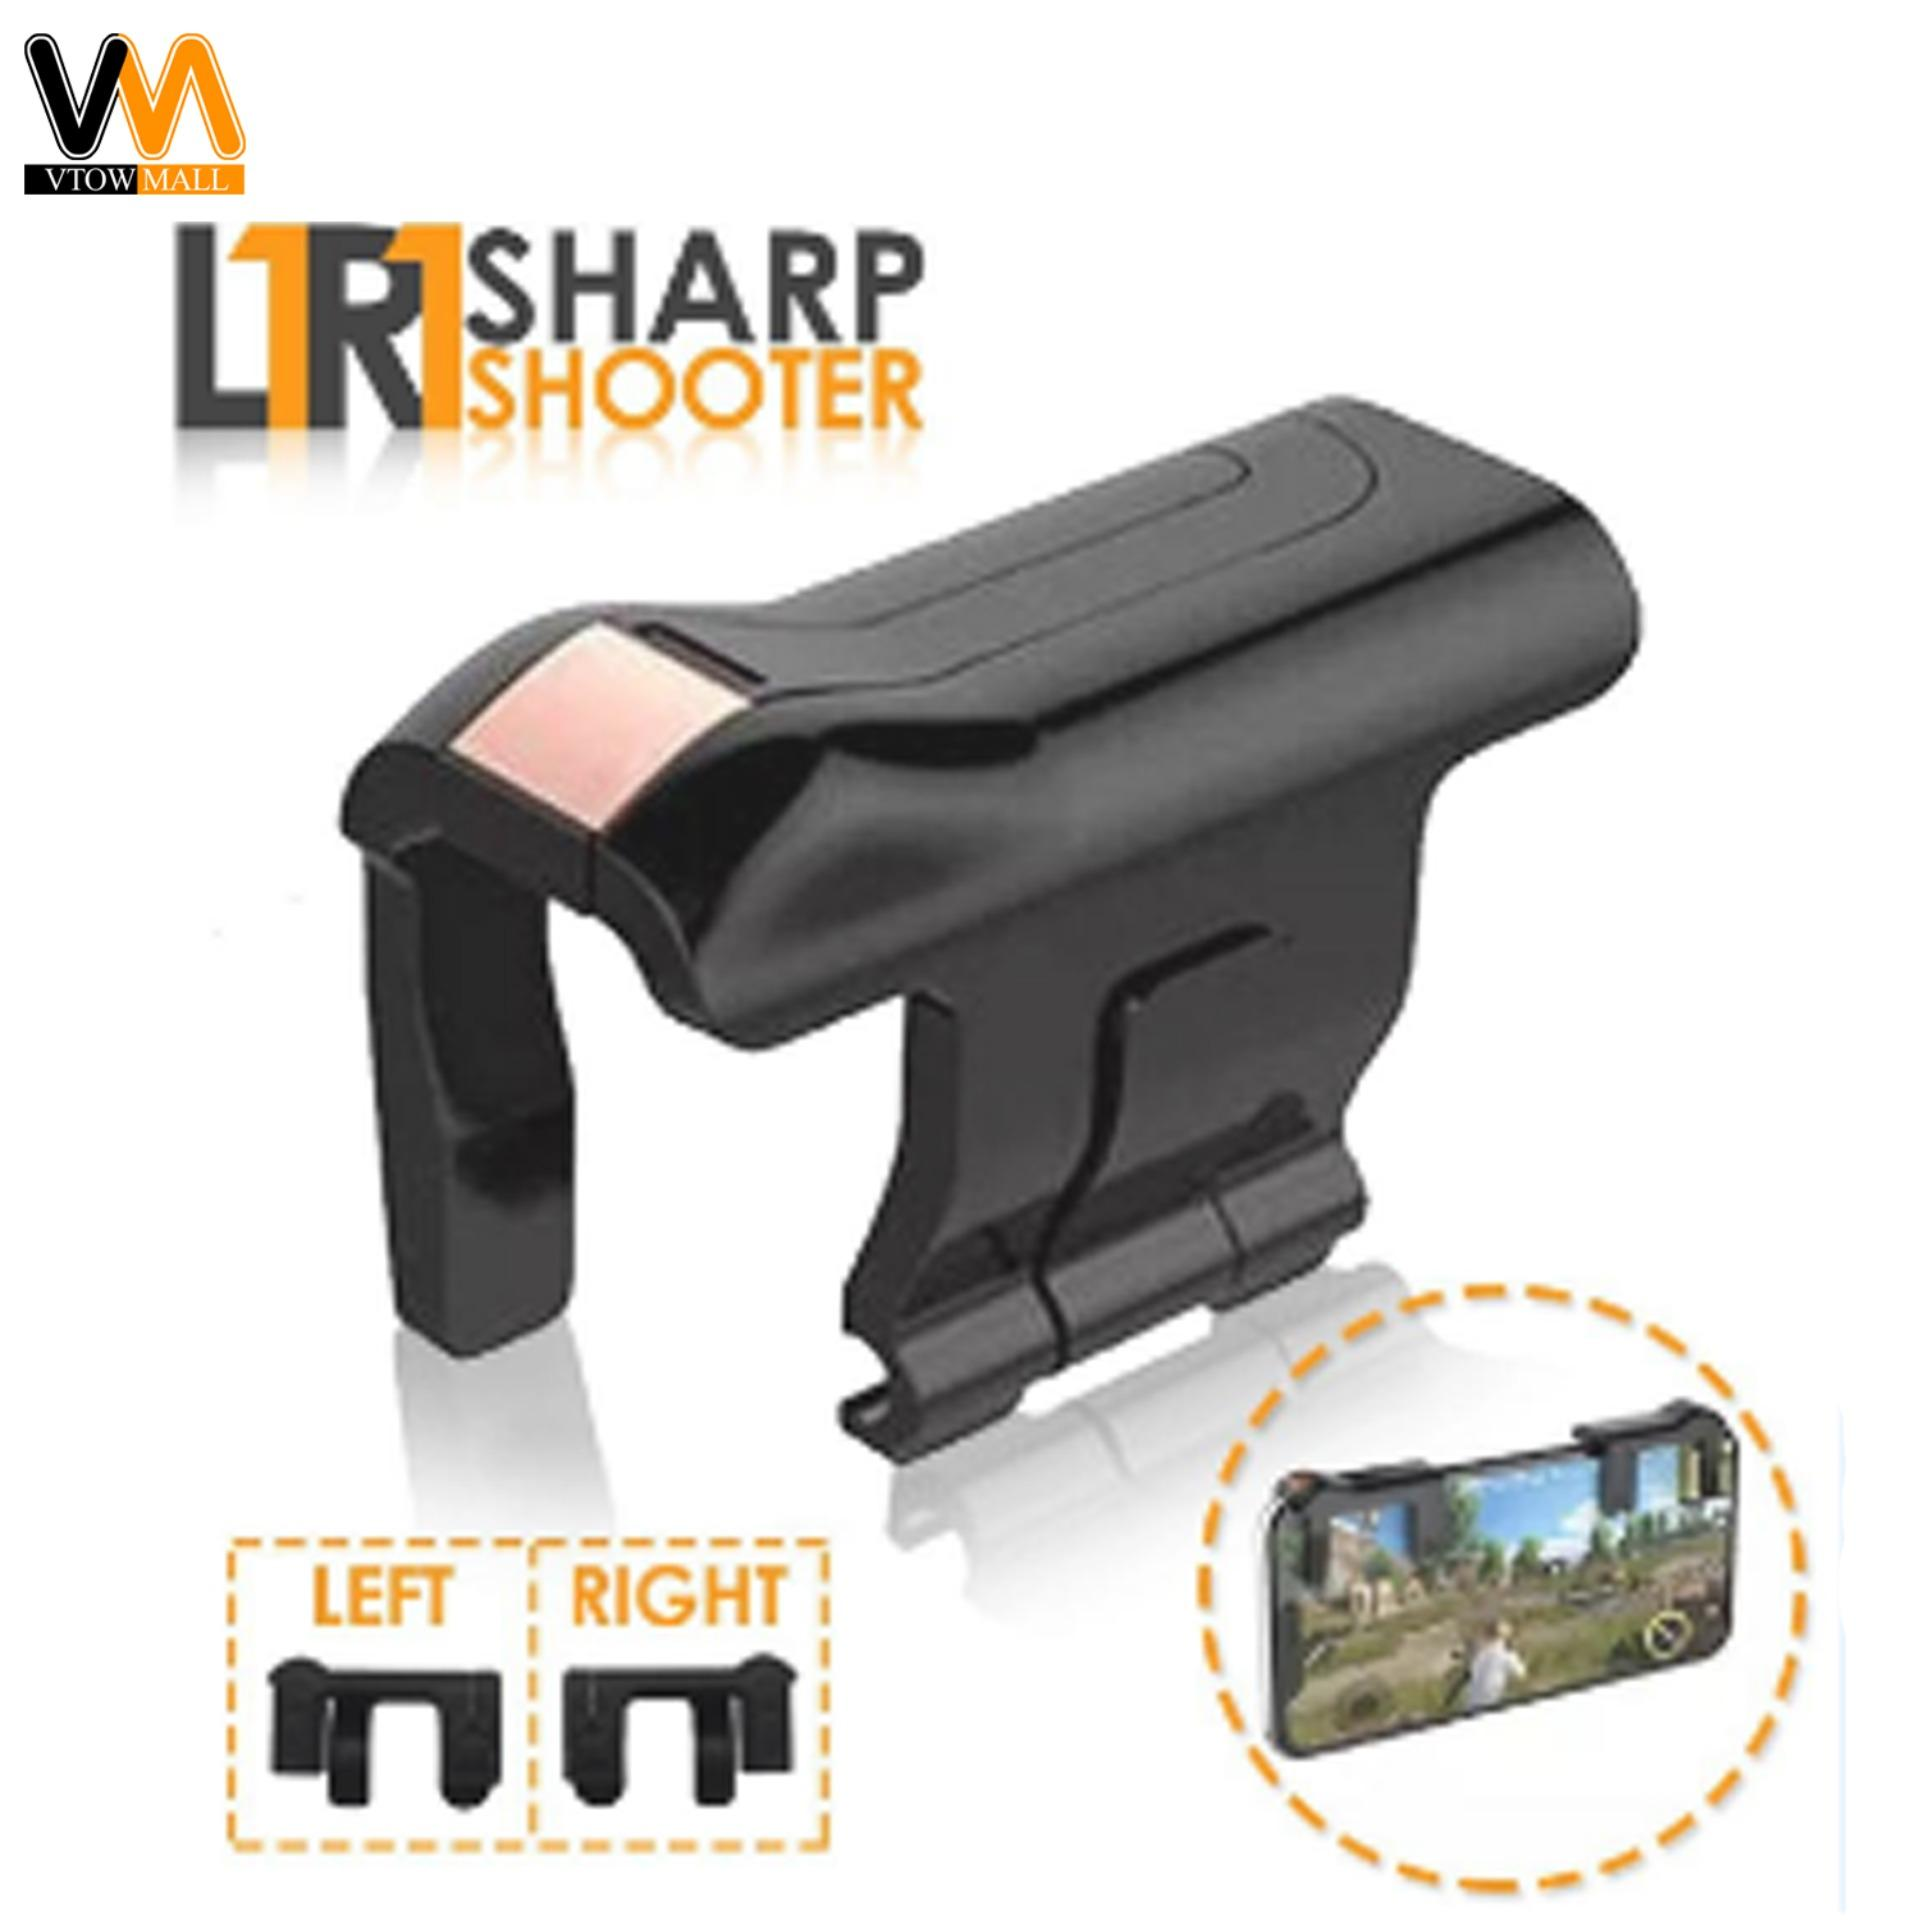 L1r1 Sharp Shooter For Rules Of Survial Philippines Price Specs L1 R1 Pubg Mobile Joystick Rule Survival Versi 3